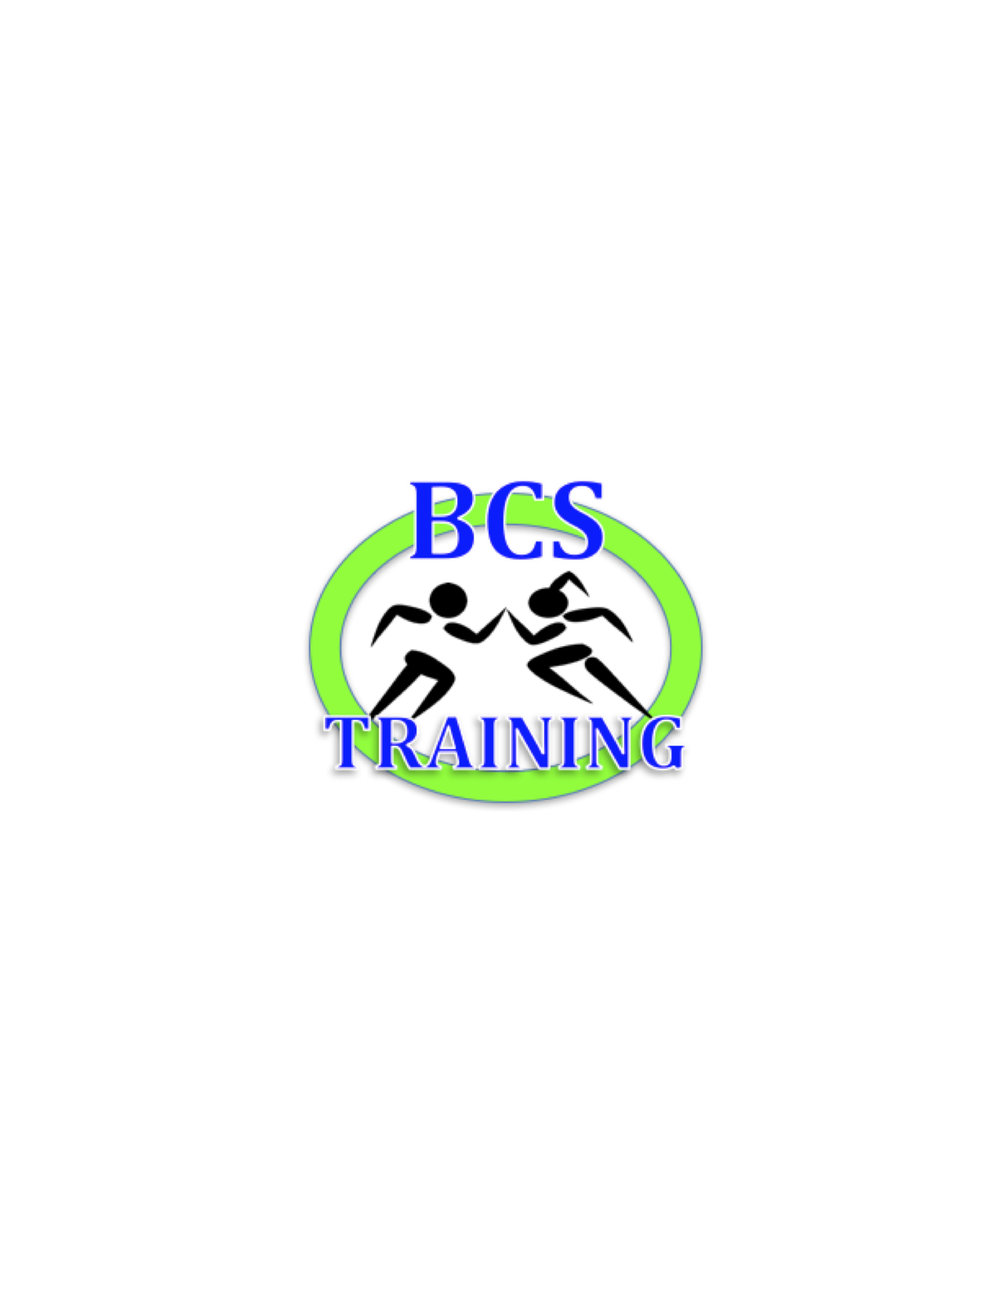 BCS TRAINING LOGO.jpg